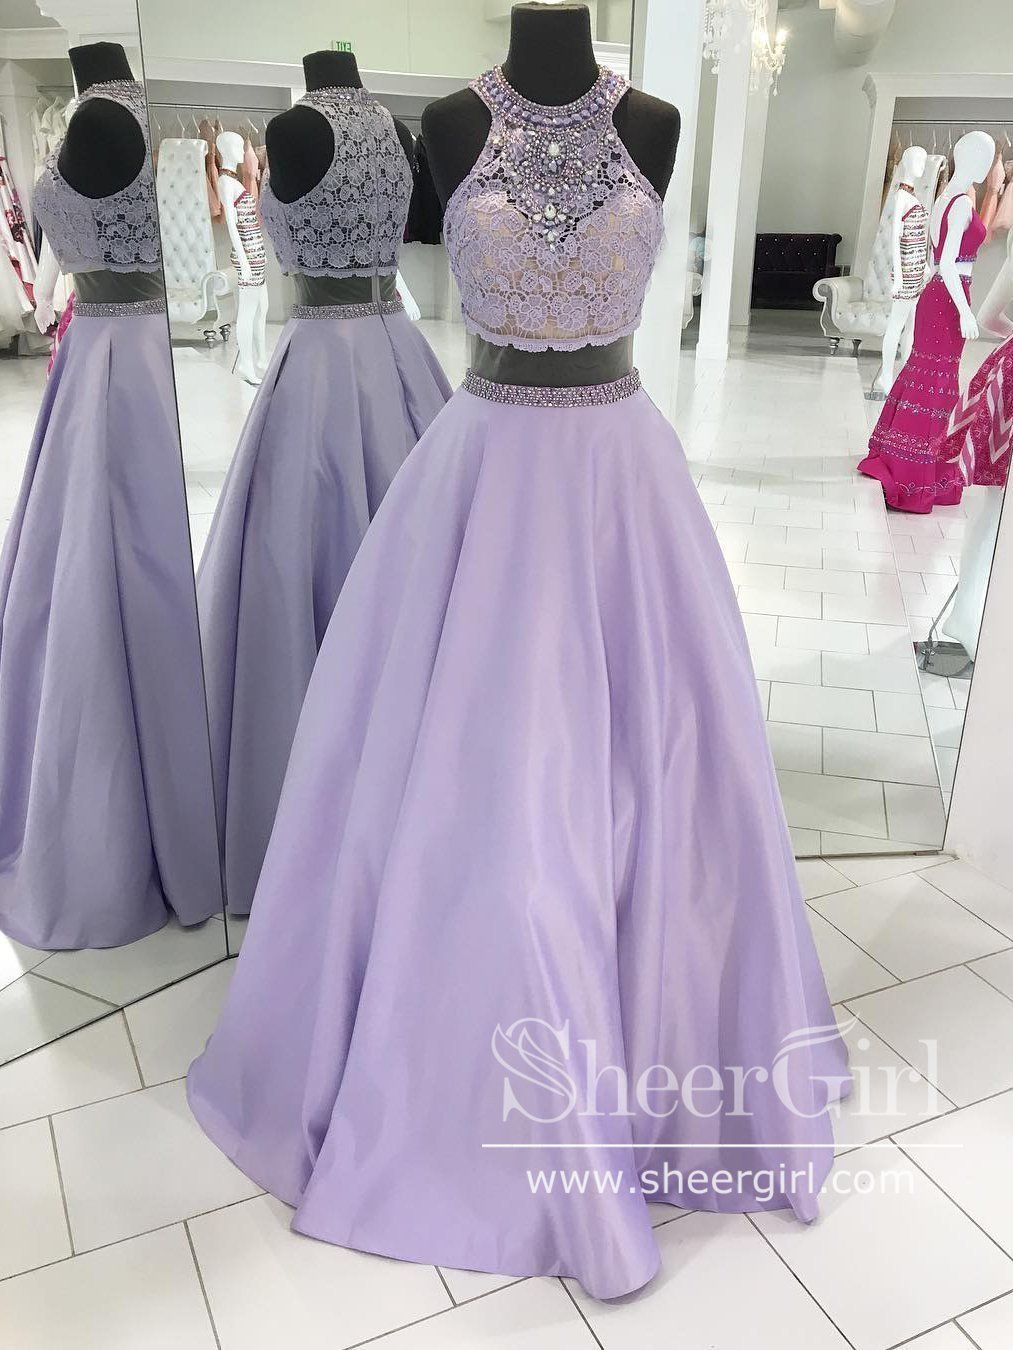 Two Pieces Sleeveless Halter Neckline Lace Bodice Rhinestones Long Prom Dress With Pockets Ard2590 Prom Dresses Two Piece High Neck Evening Dress Piece Prom Dress [ 1350 x 1013 Pixel ]